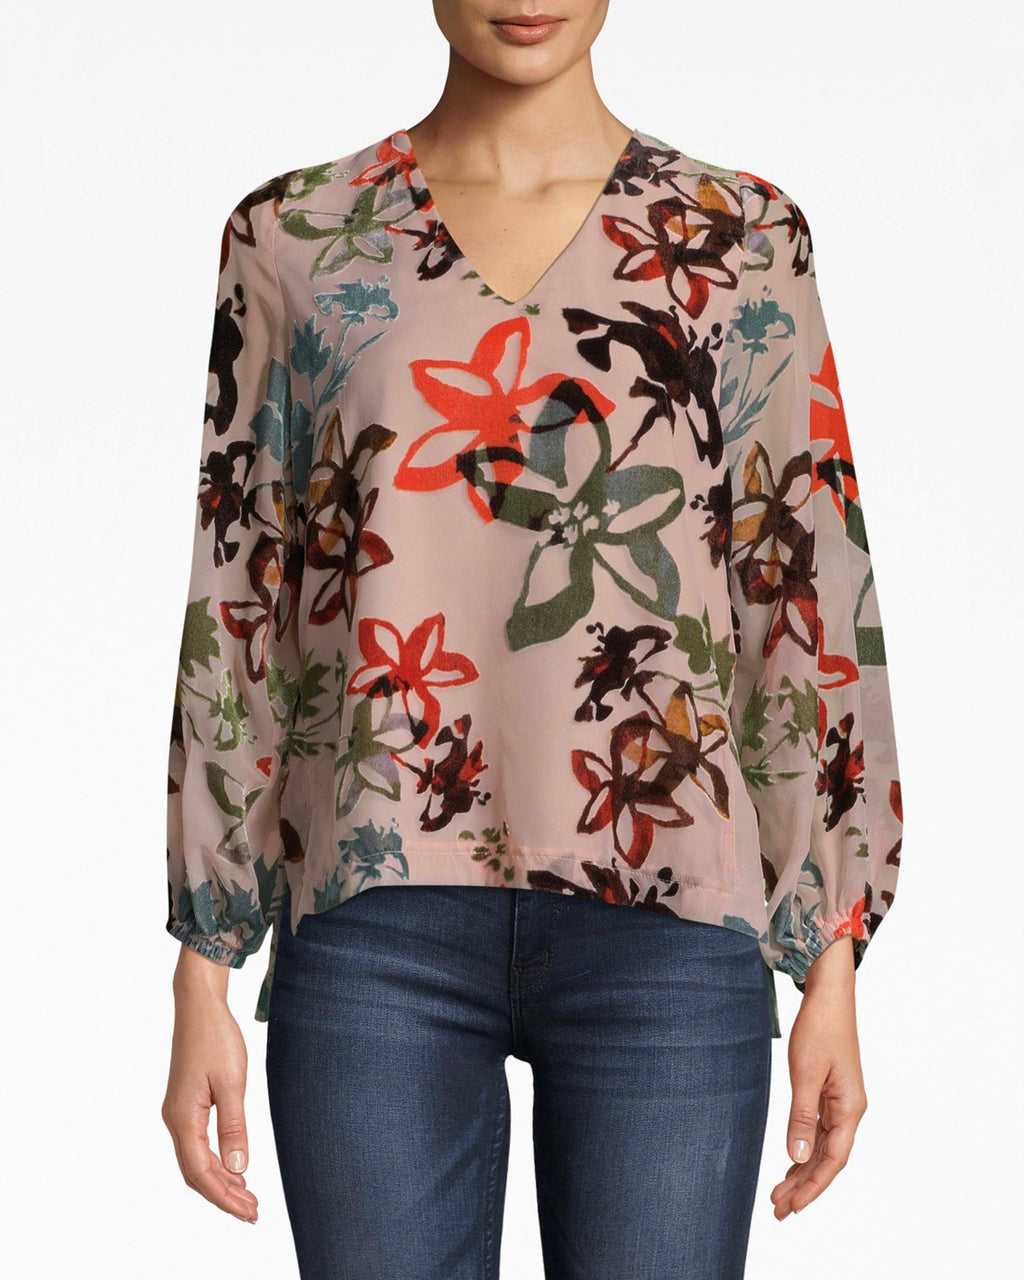 BH10499 - AUTUMN DREAM BURNOUT PENELOPE TOP - tops - blouses - Effortless. The loose sleeves on this v-neck top create a flowy, airy mood. The back tie and cutout are a sexy surprise. Pair with denim and sandals.